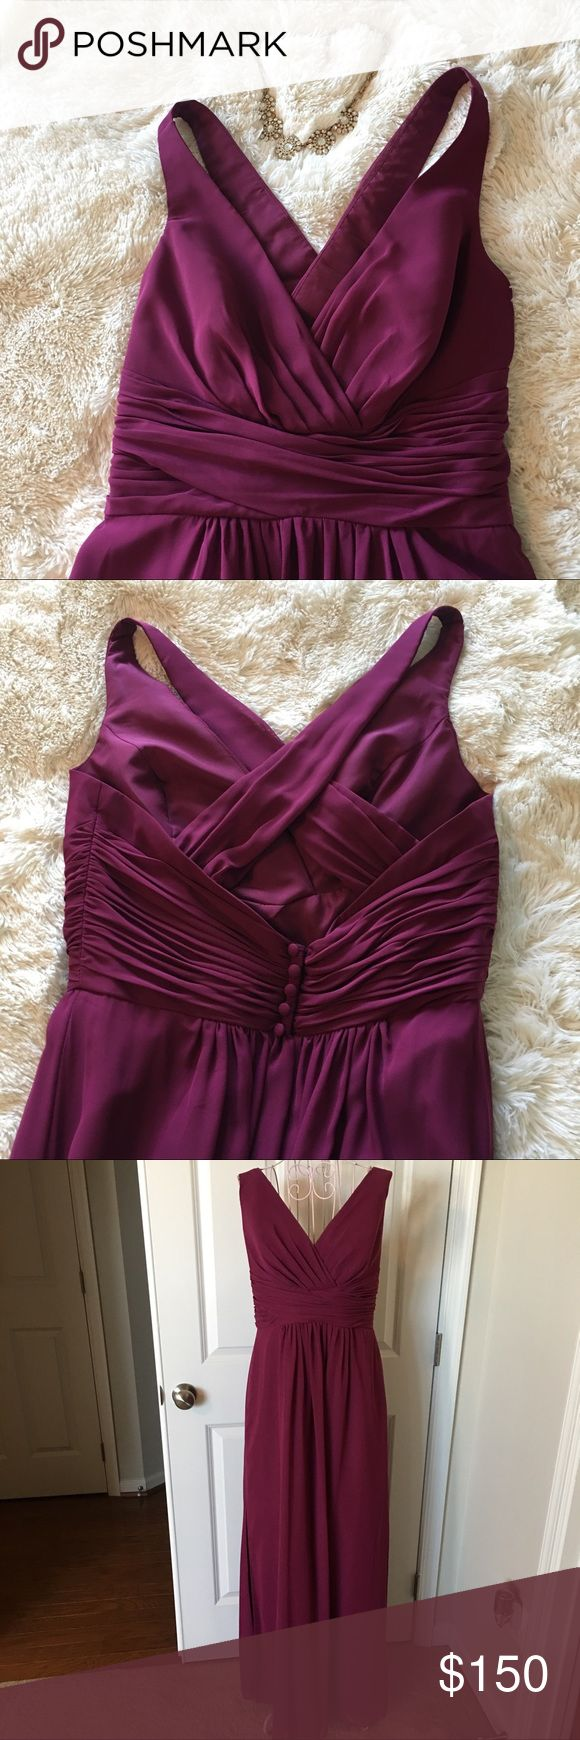 NWT Alfred Angelo V-Neck Bridesmaids Gown #7355L Berry Color! NEW and in protective bag. Chiffon, v neck with cross over back straps, draped bodice, natural waist, floor length, a-line silhouette. Beautiful Gown!! Alfred Angelo Dresses Prom